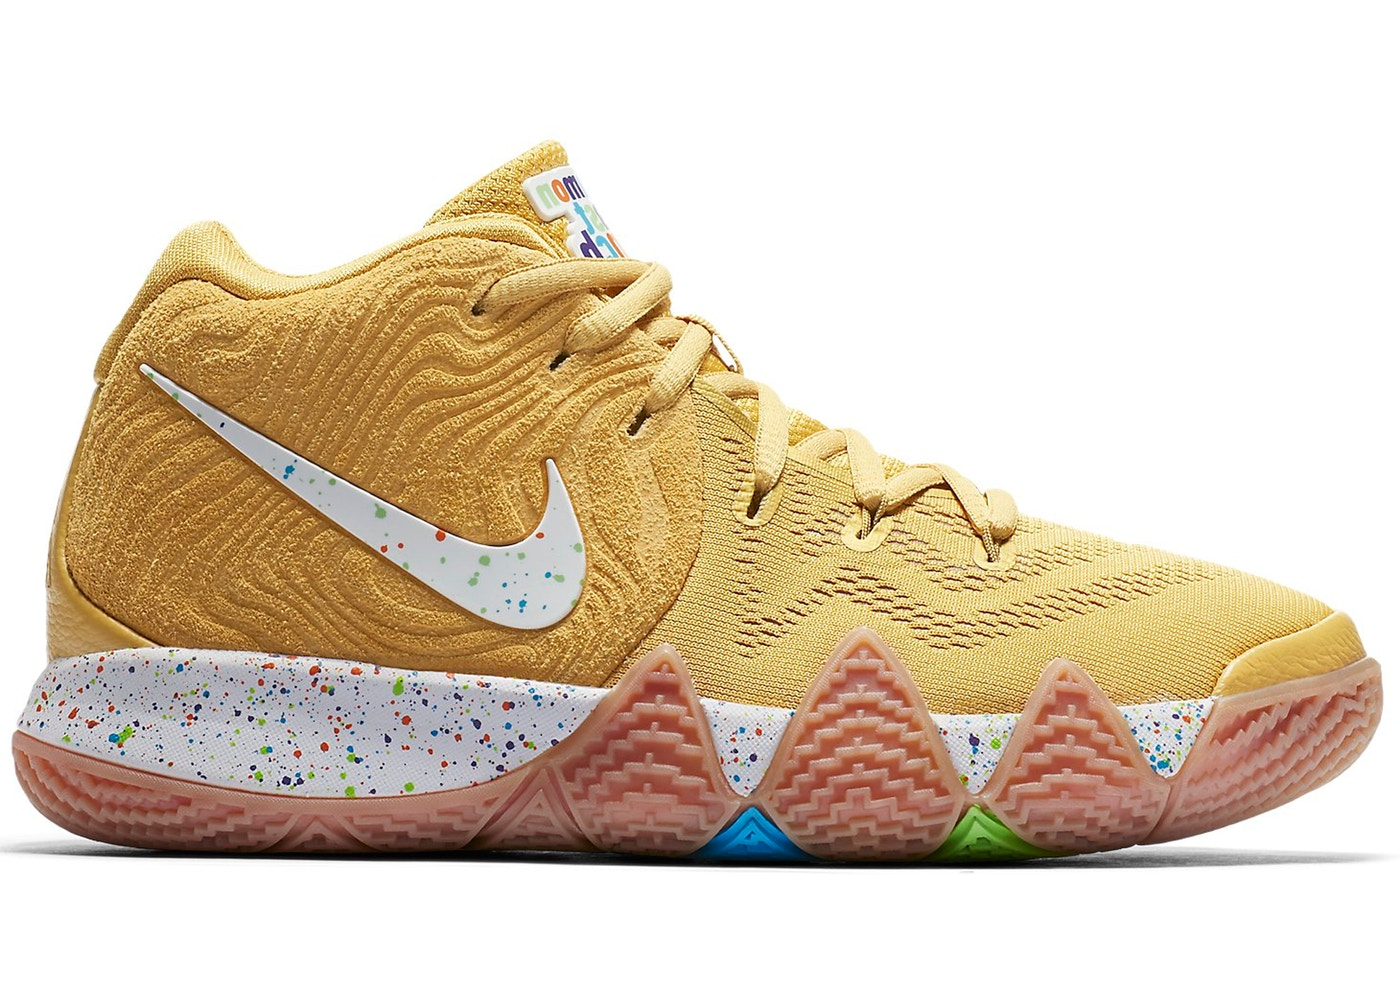 reputable site 5c7aa 3fac9 Buy Nike Basketball Kyrie Shoes & Deadstock Sneakers